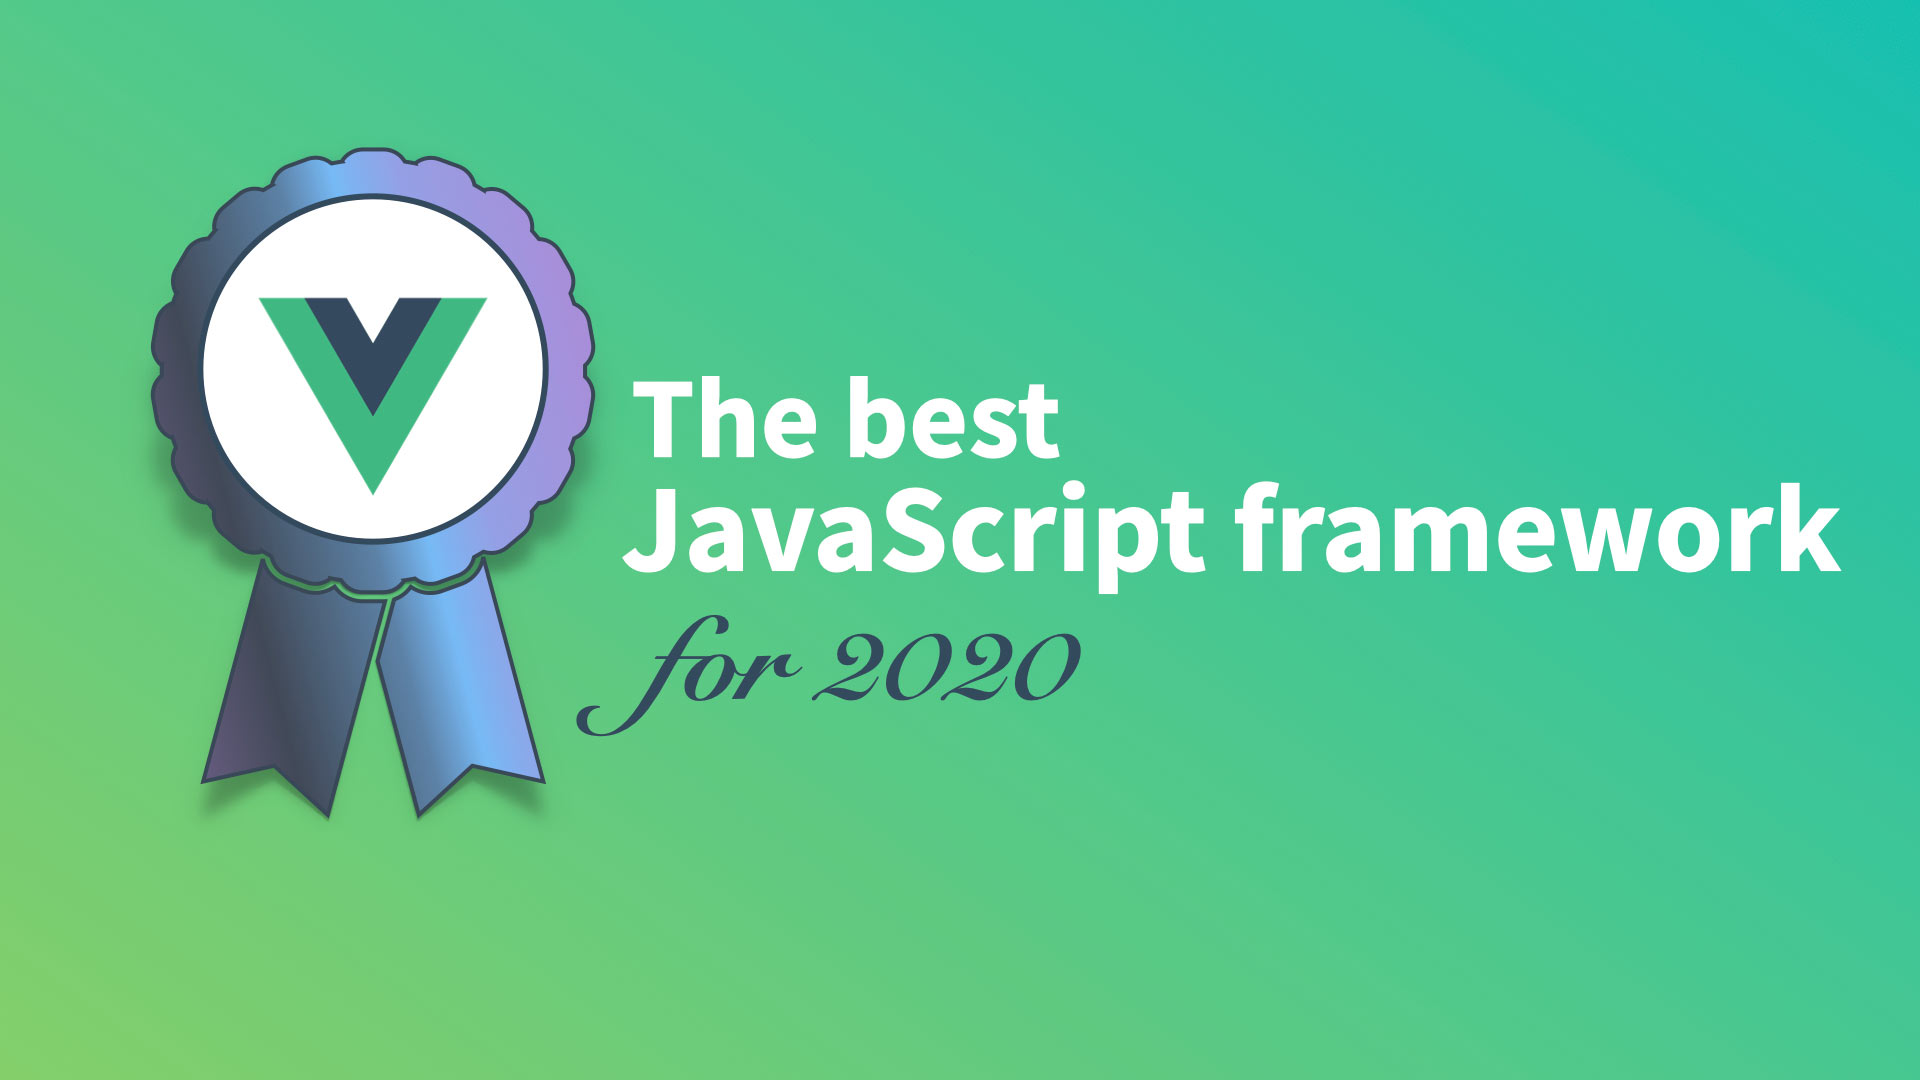 Why Vue is the best framework for 2020